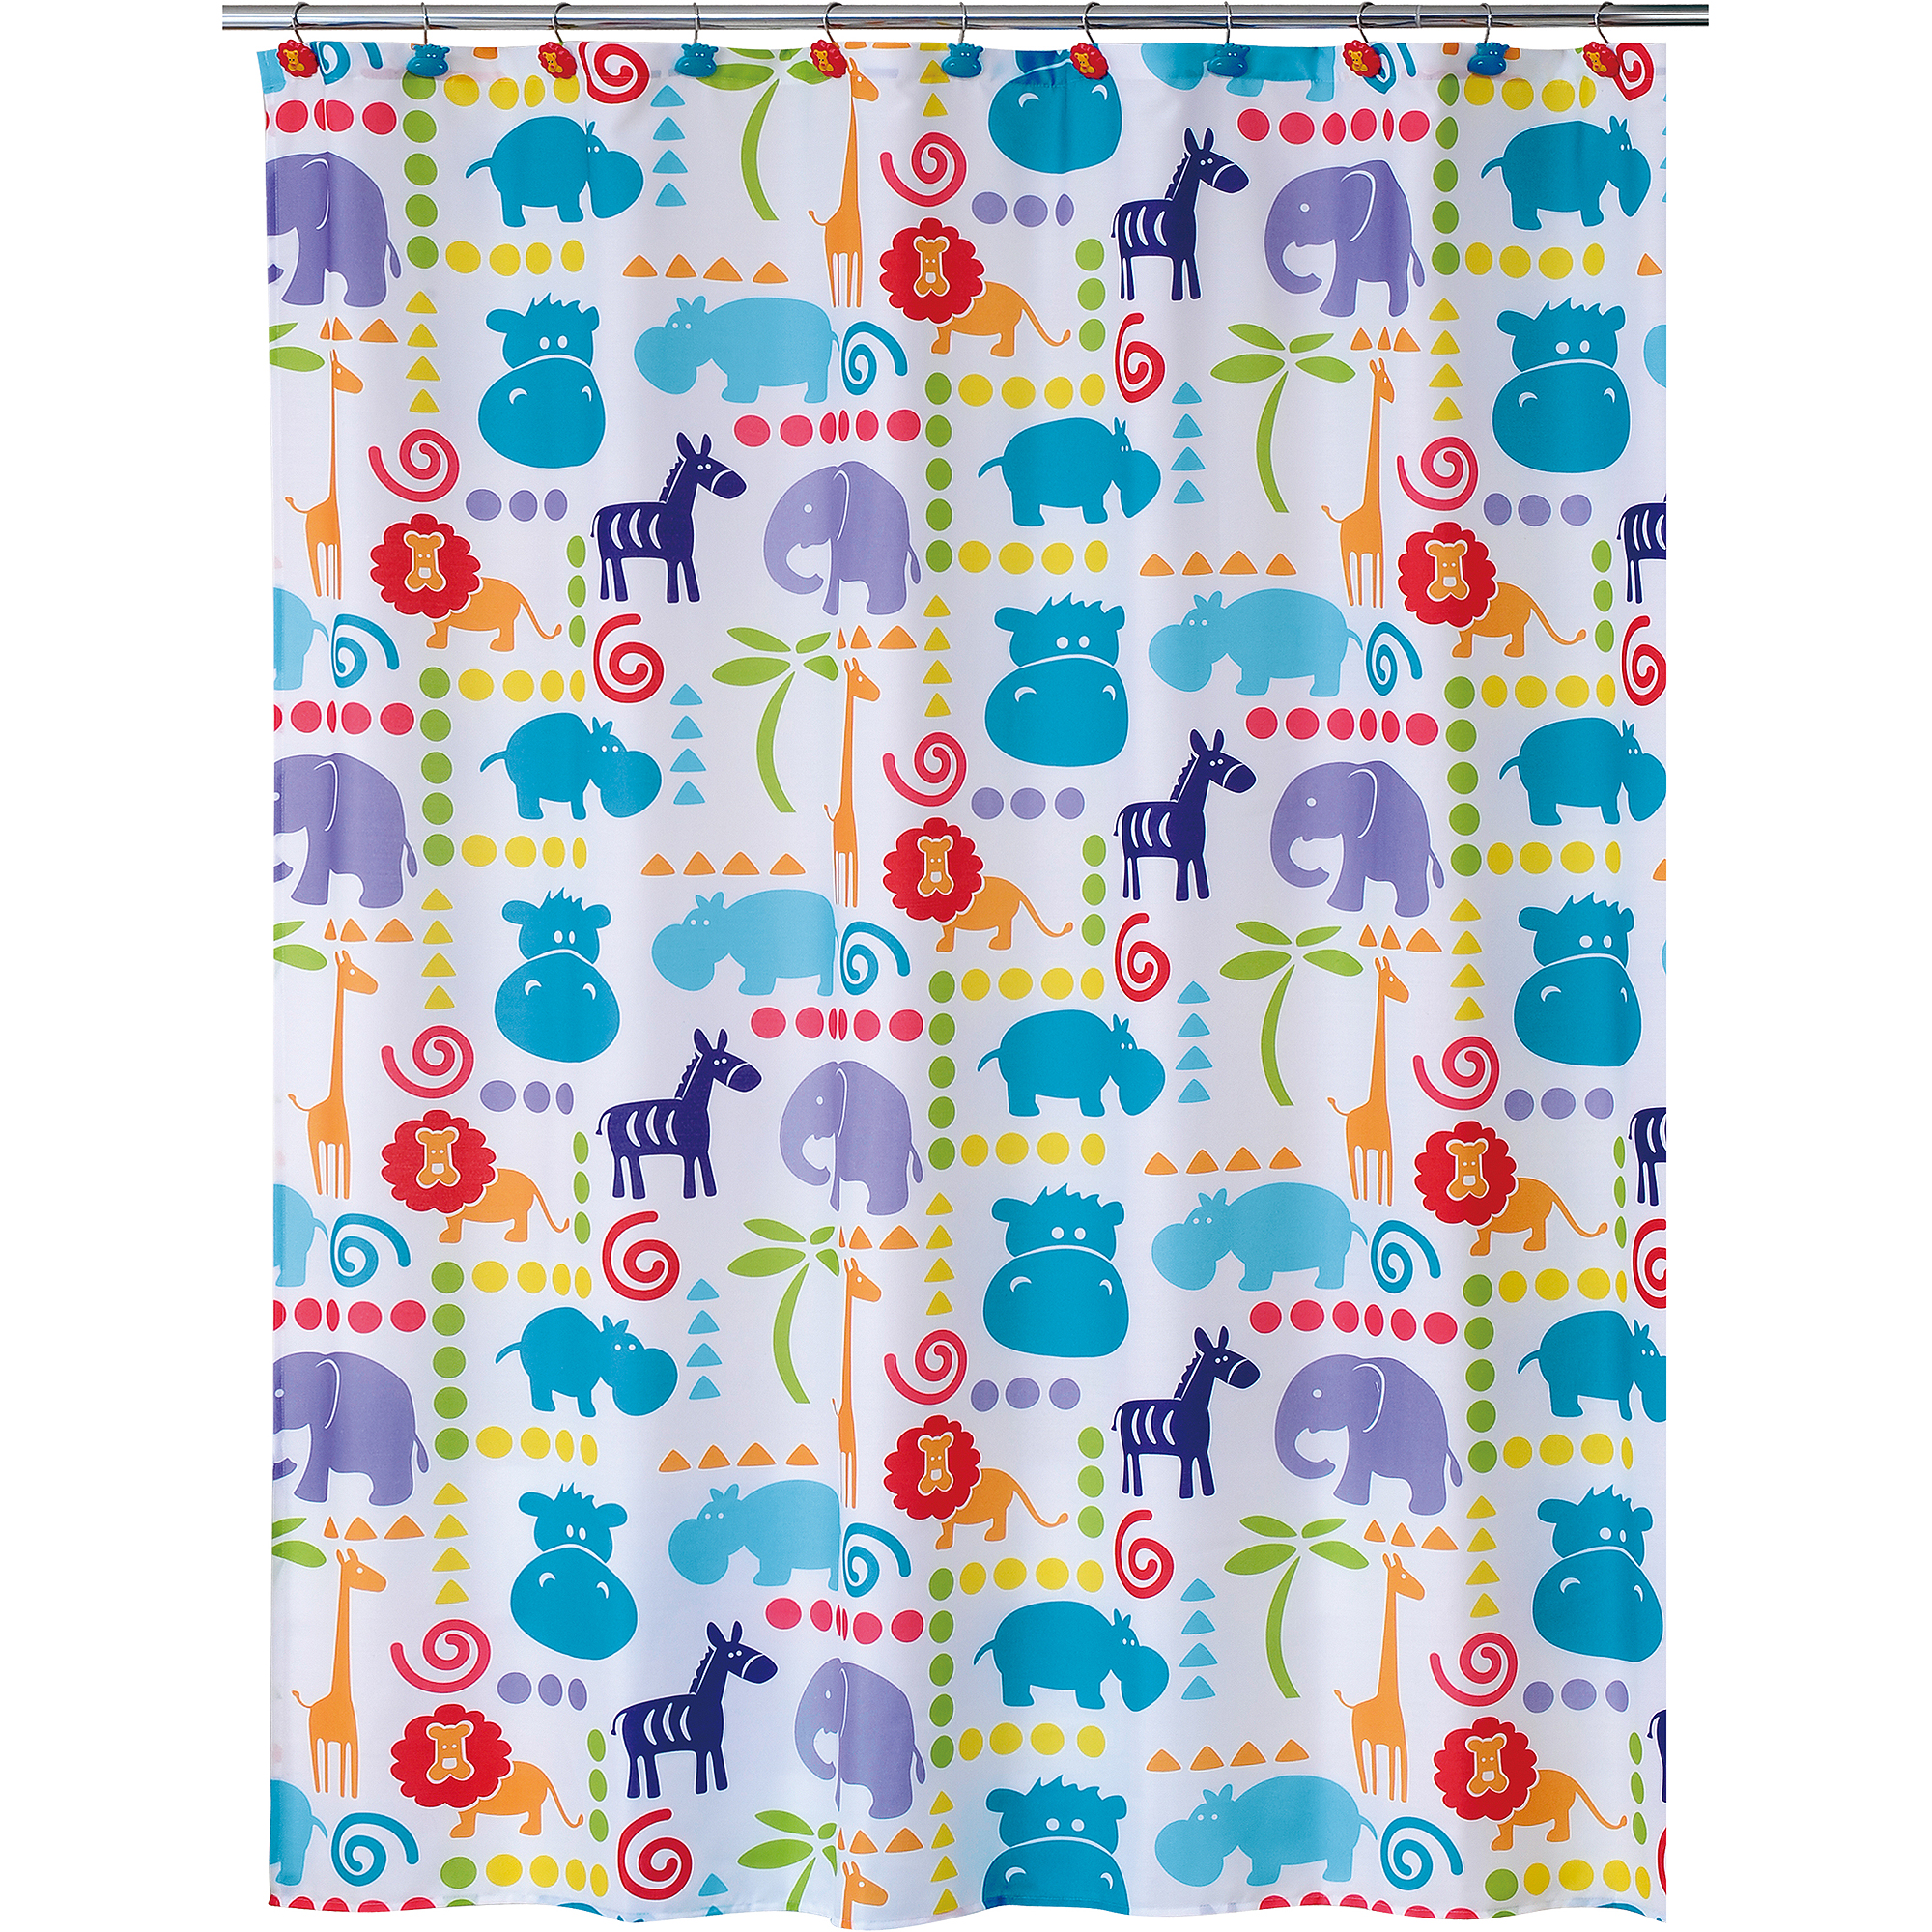 Hippo Shower Curtain by Allure Home